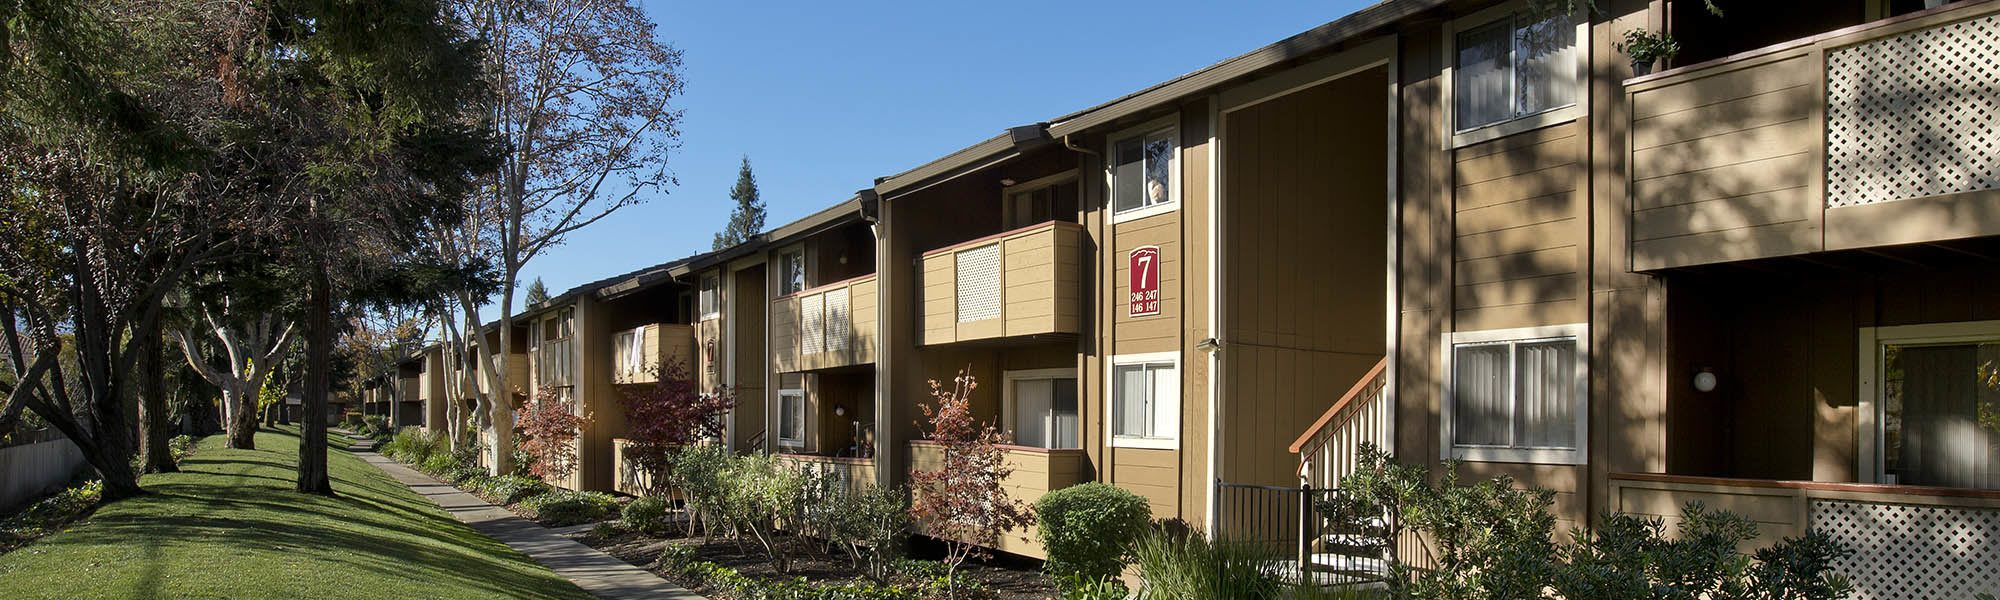 Read our privacy policy on our website for Plum Tree Apartment Homes